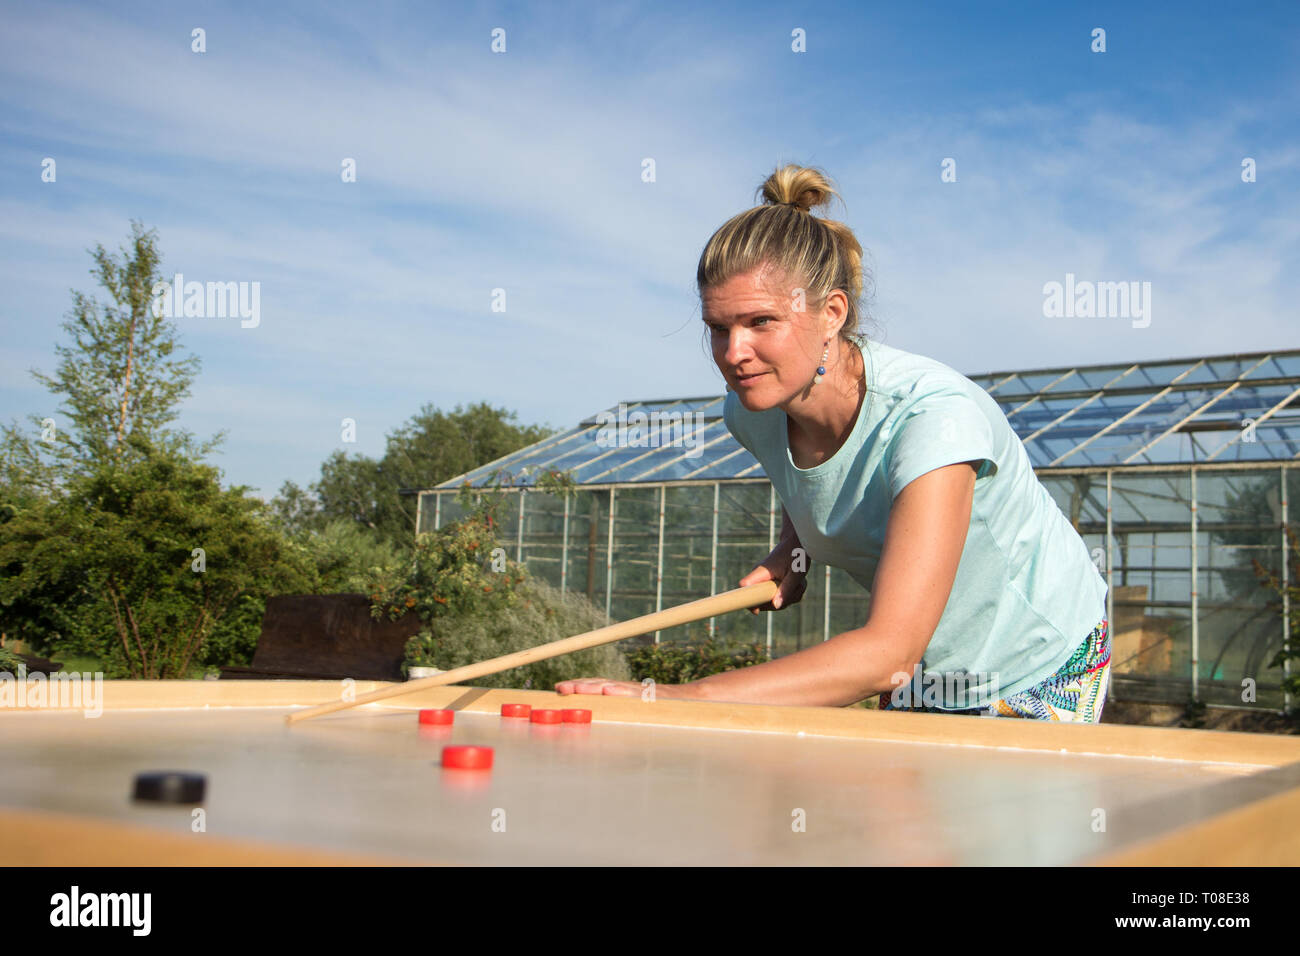 Women playing Novuss in outdoors - Stock Image